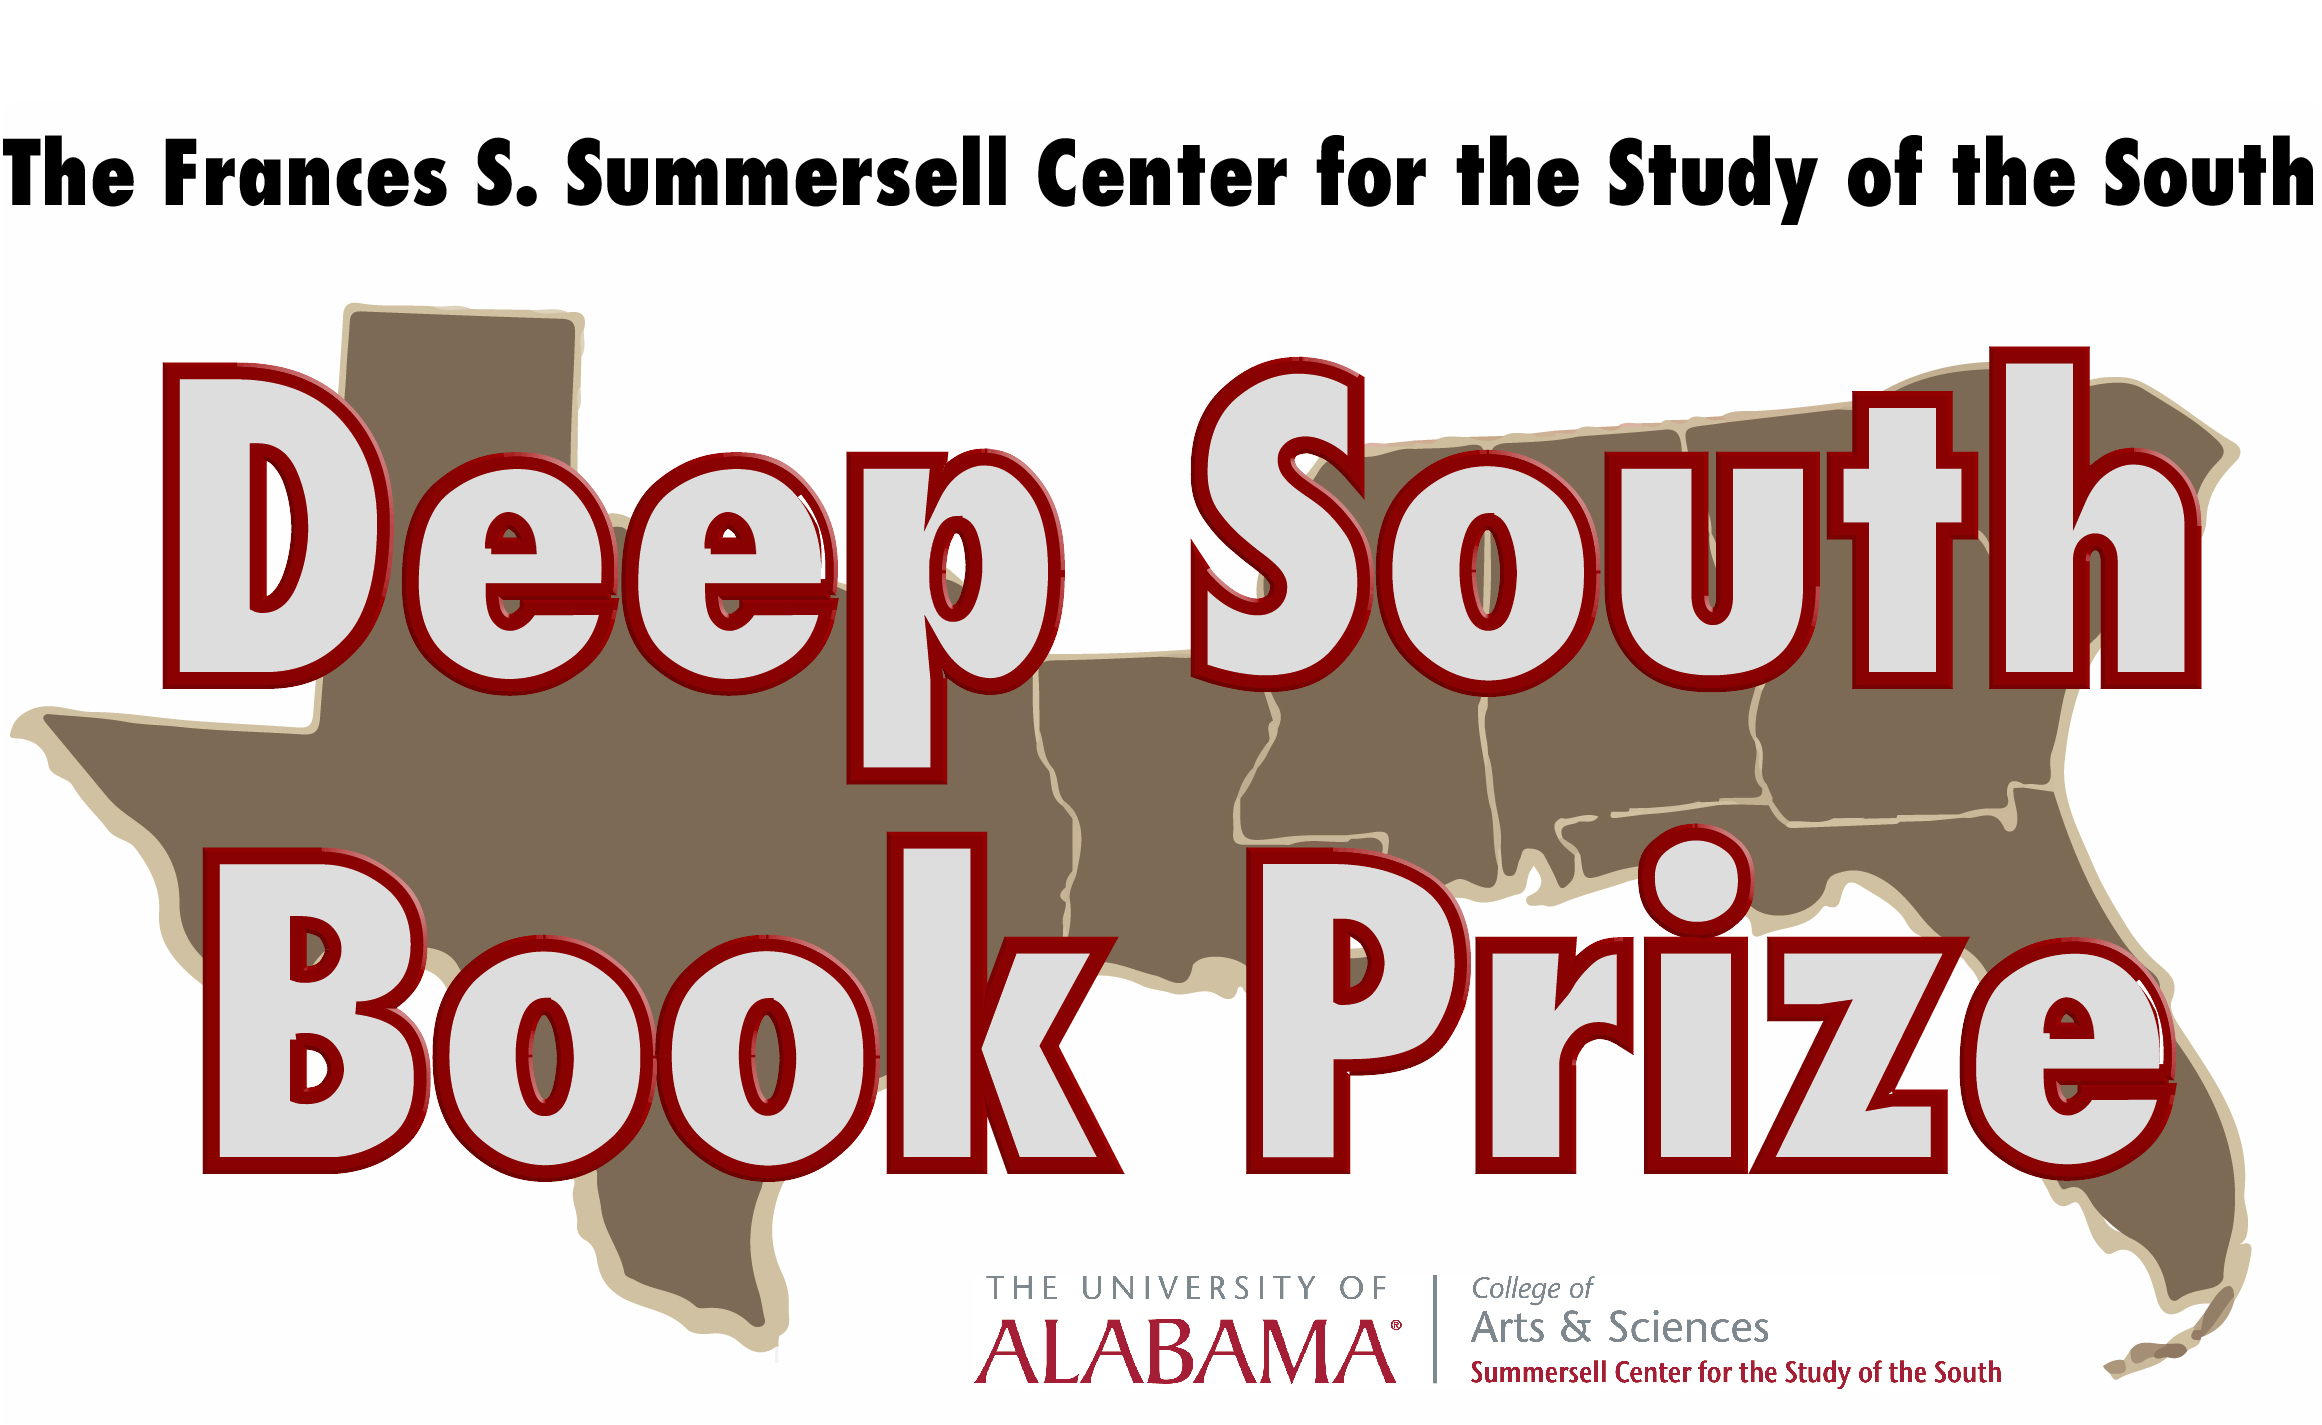 This image is a logo for the Deep South Book Prize